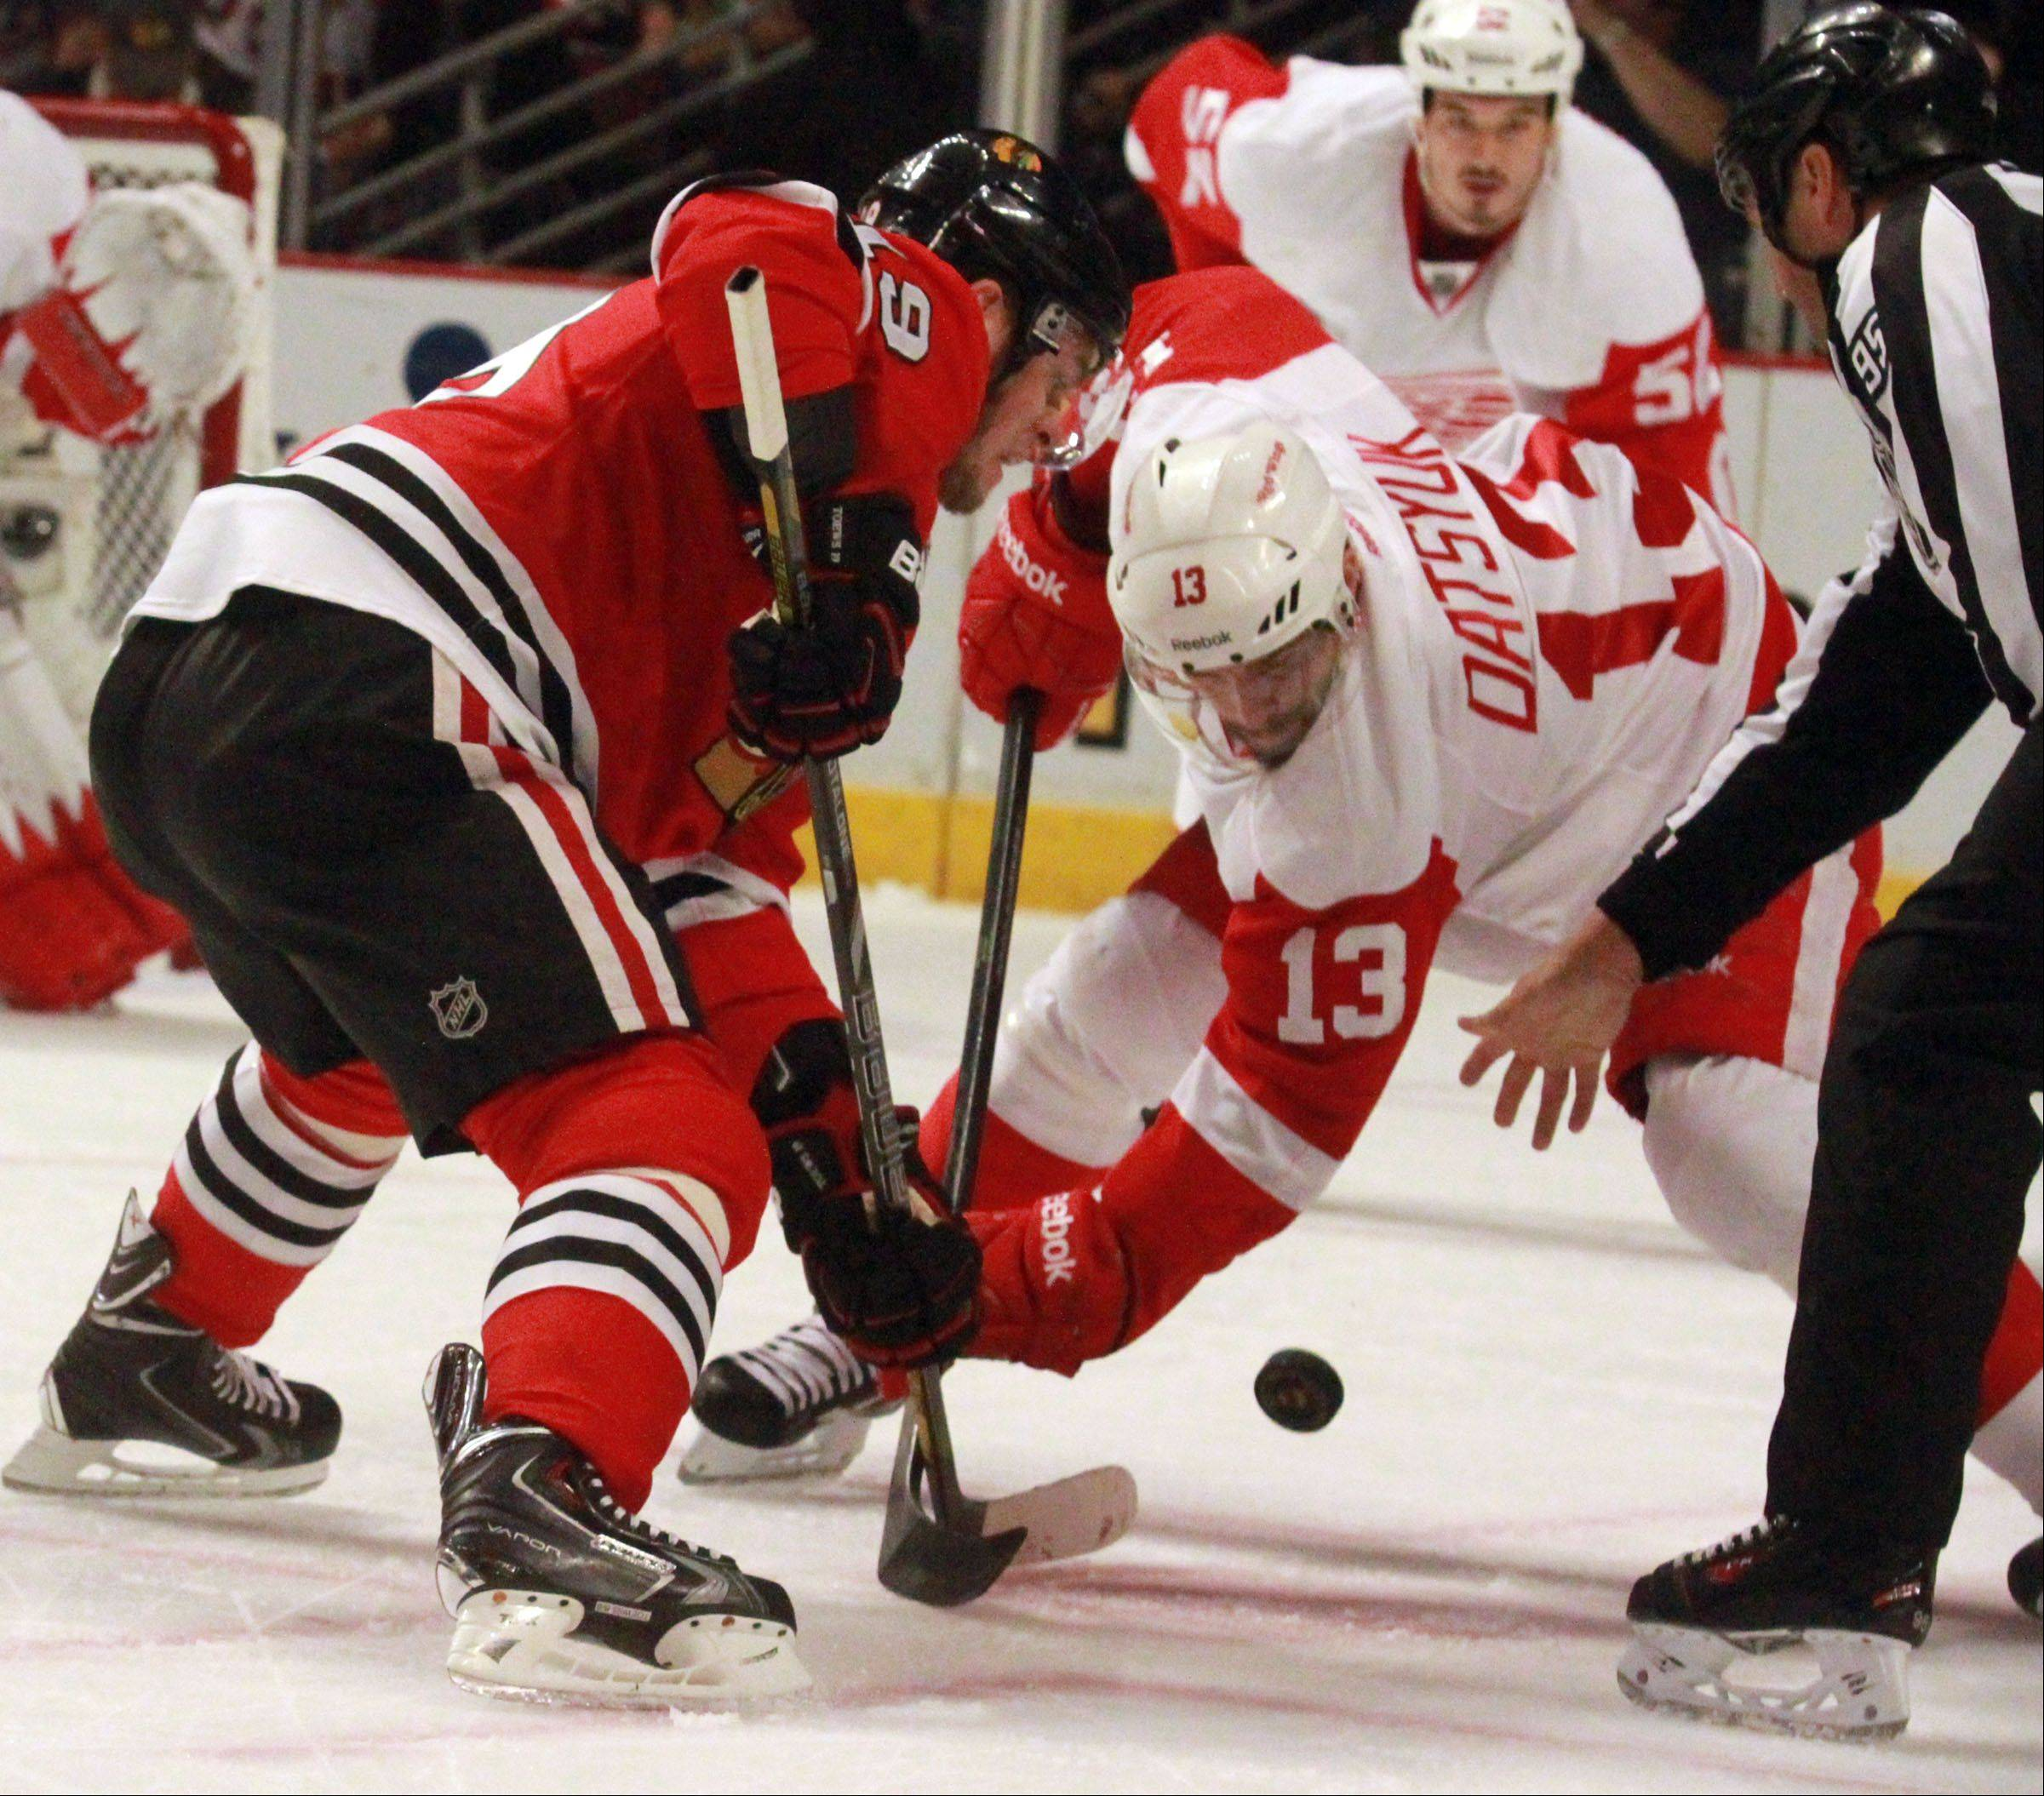 Jonathan Toews battles for a faceoff with Pavel Datsyuk of the Red Wings in Game 2 of the Western Conference semifinals at the United Center on Saturday. The Red Wings won 4-1 to tie the series at 1-1.